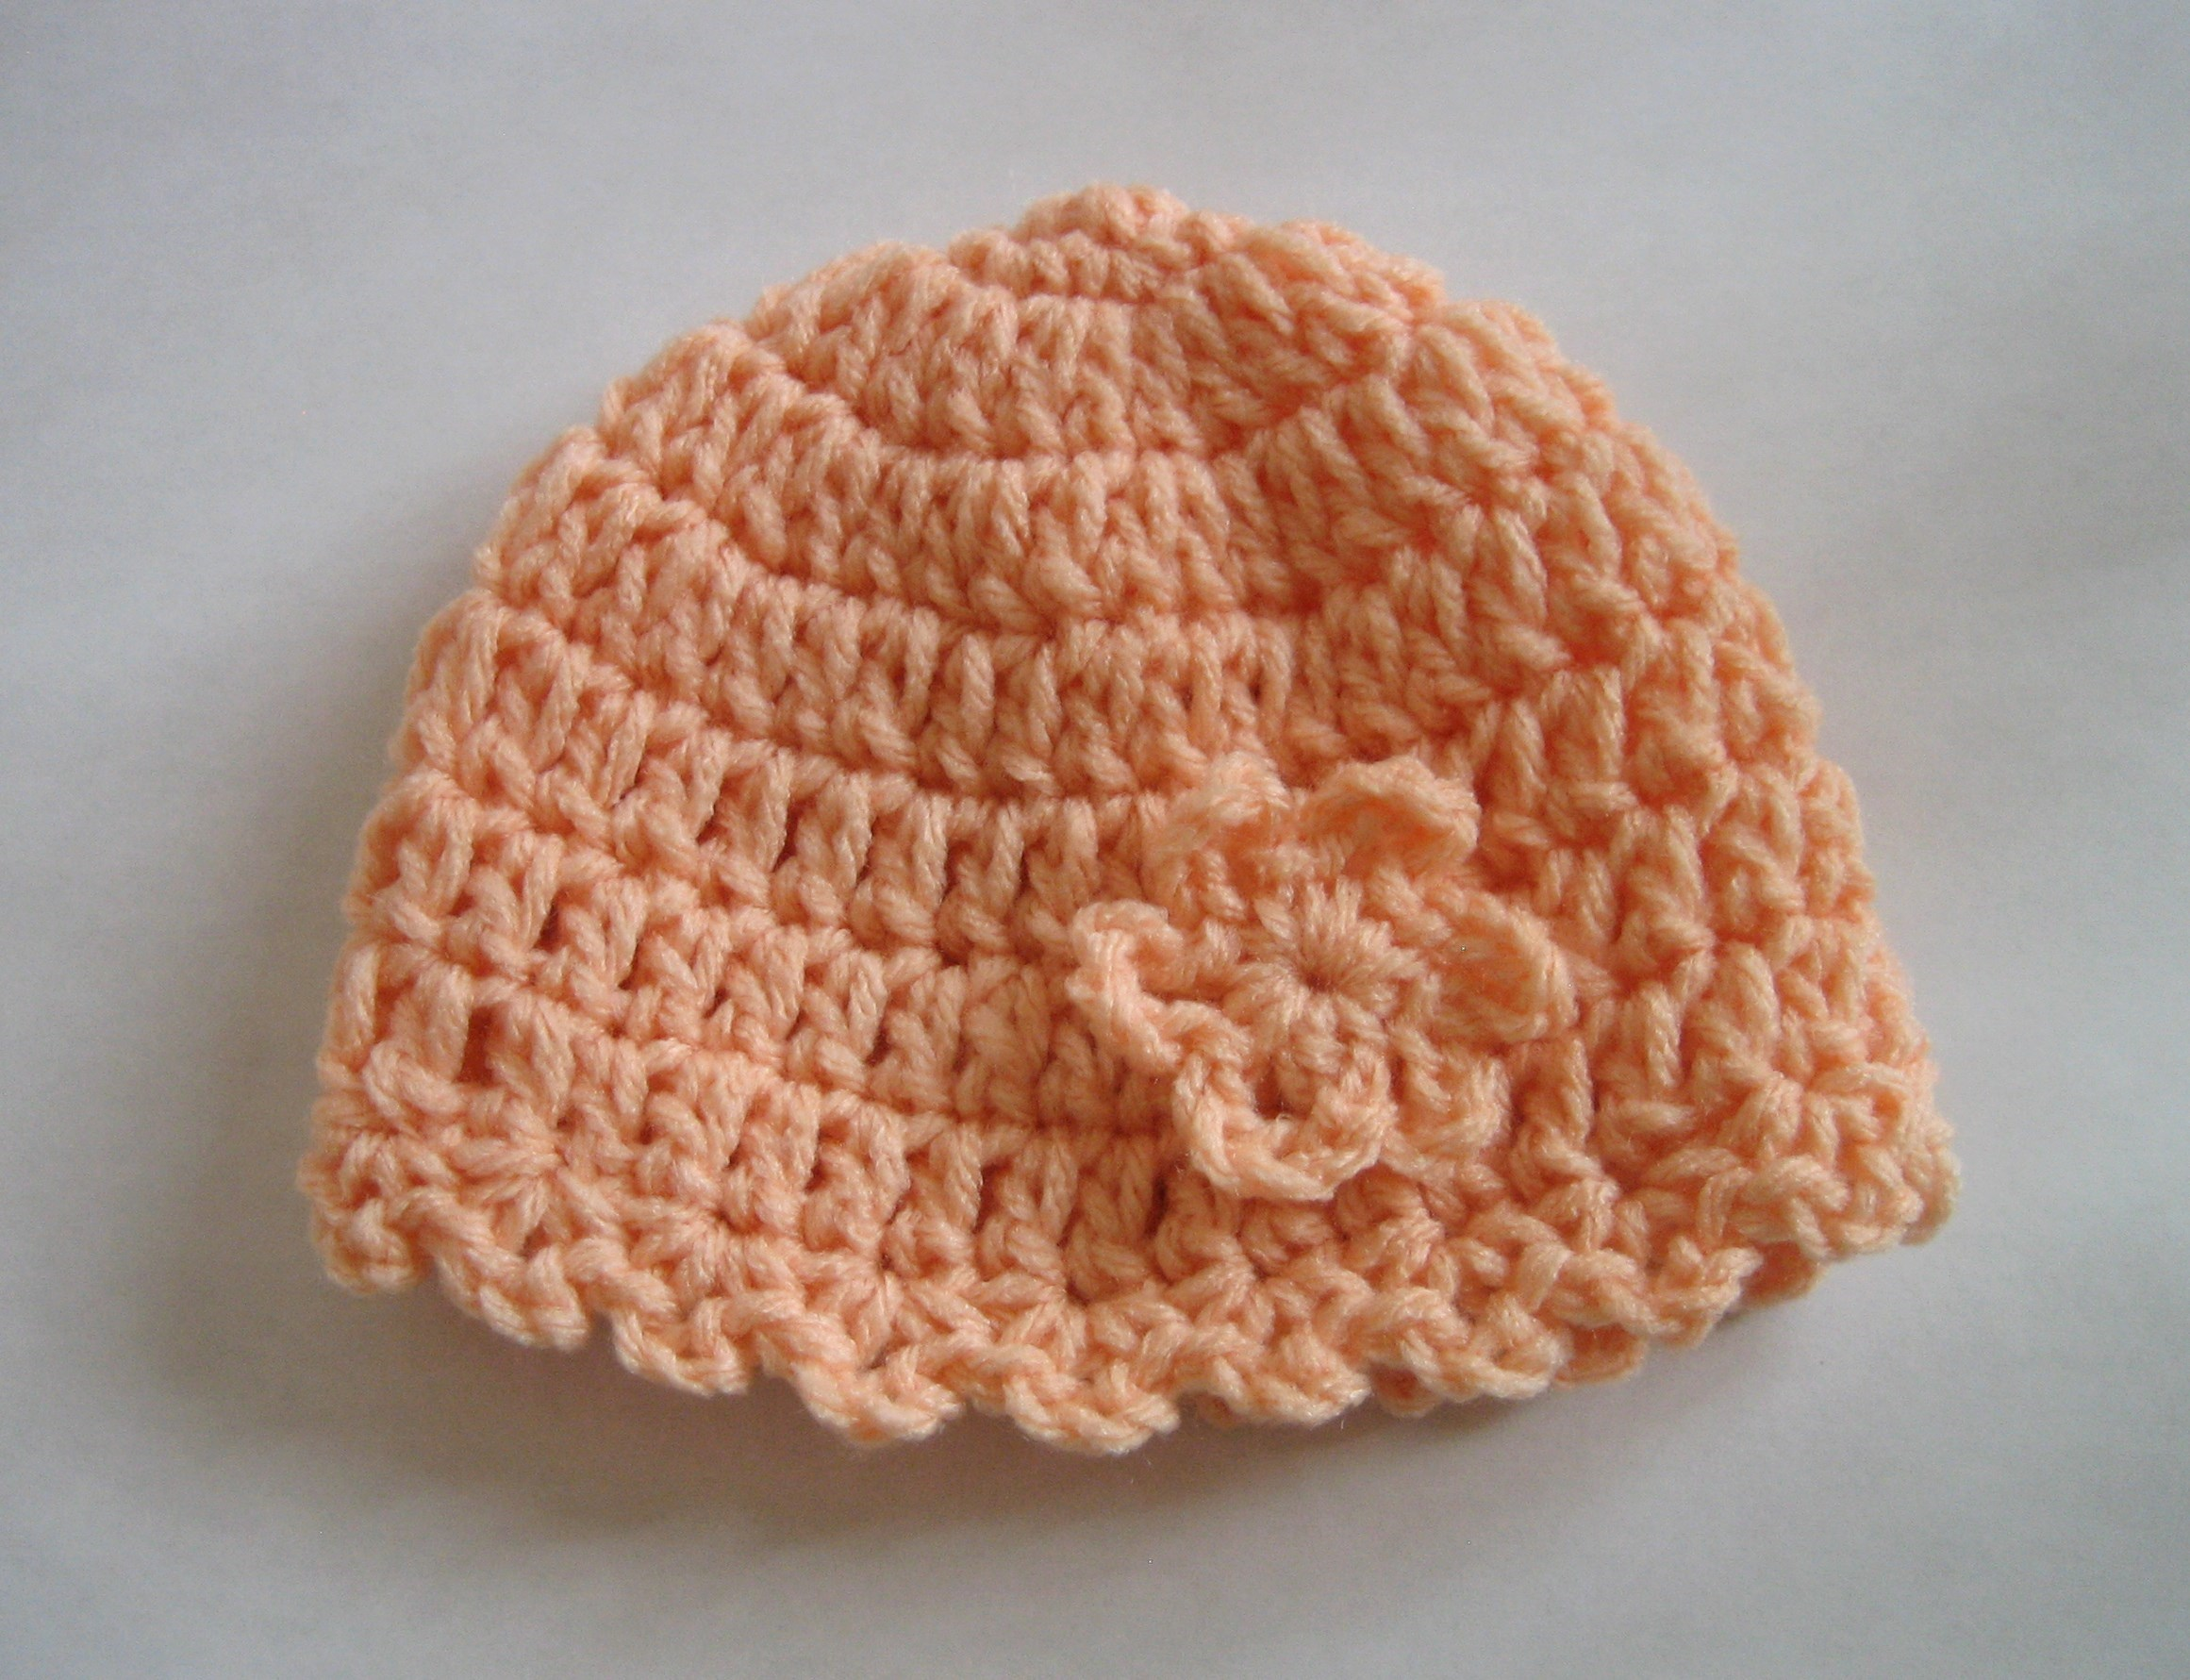 64378b095 Crochet Pattern of the Day: Little Flower Baby Hat - Stitch and Unwind